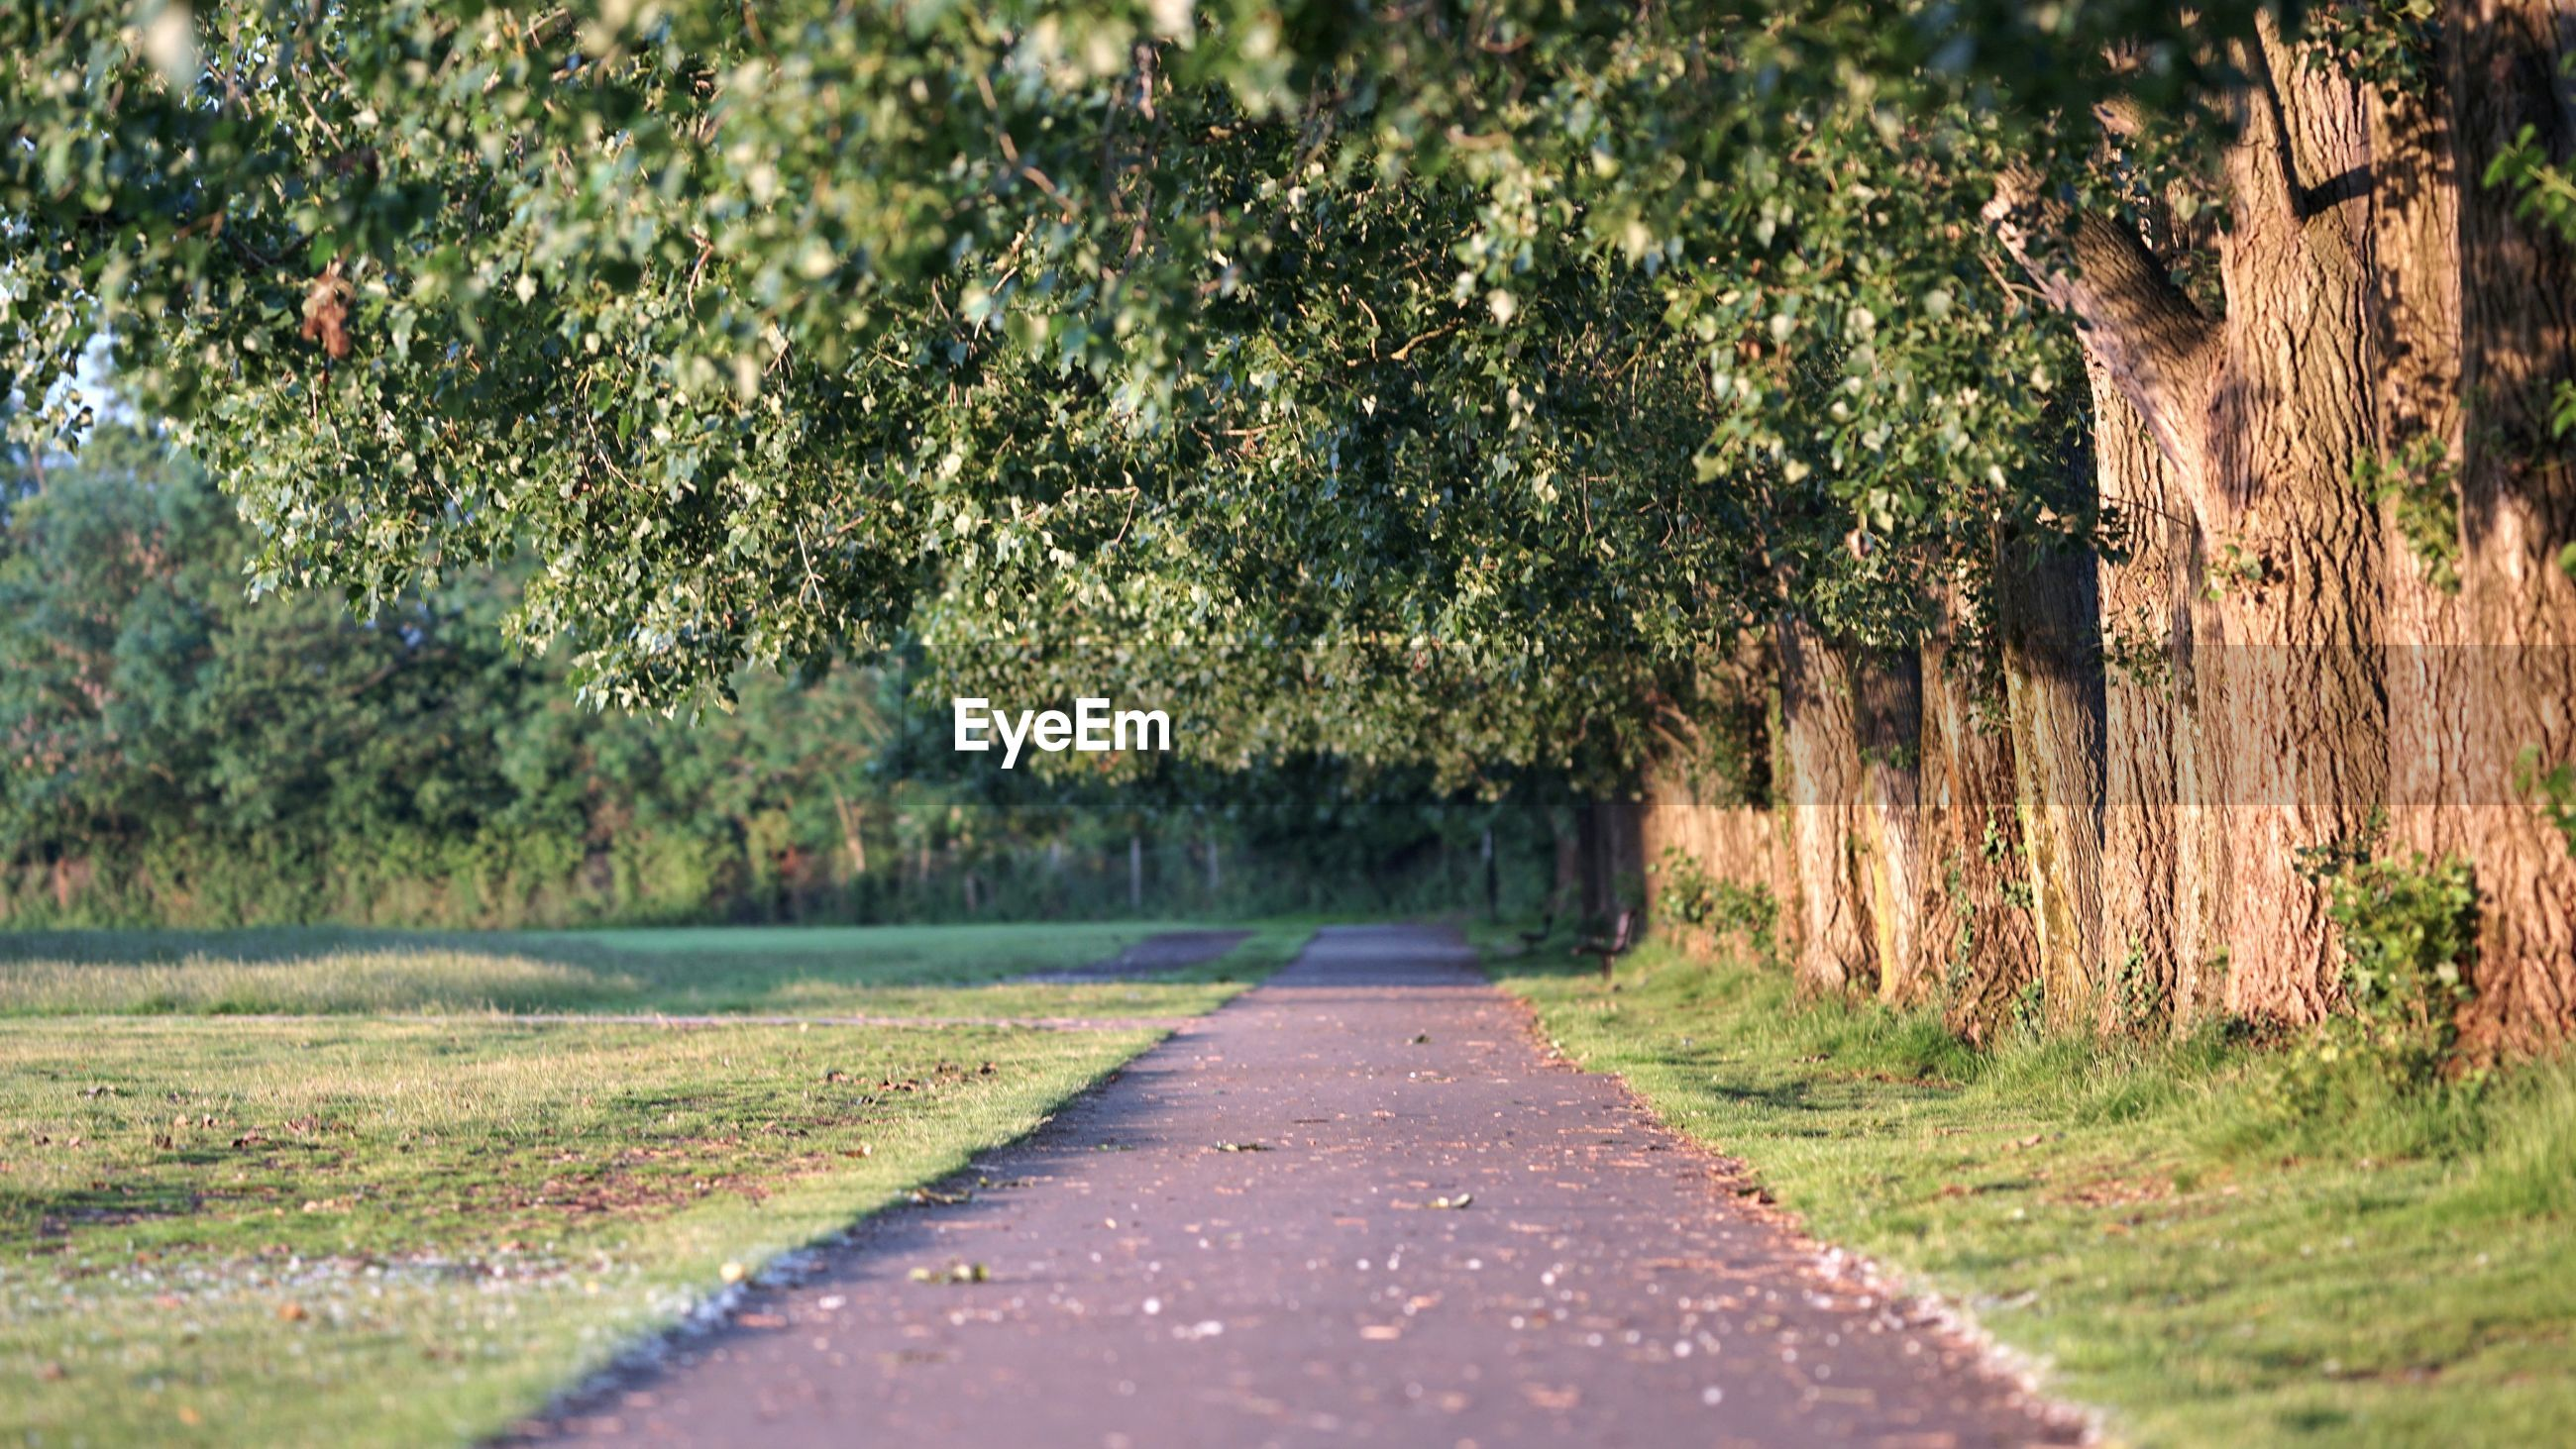 ROAD BY TREES ON FIELD